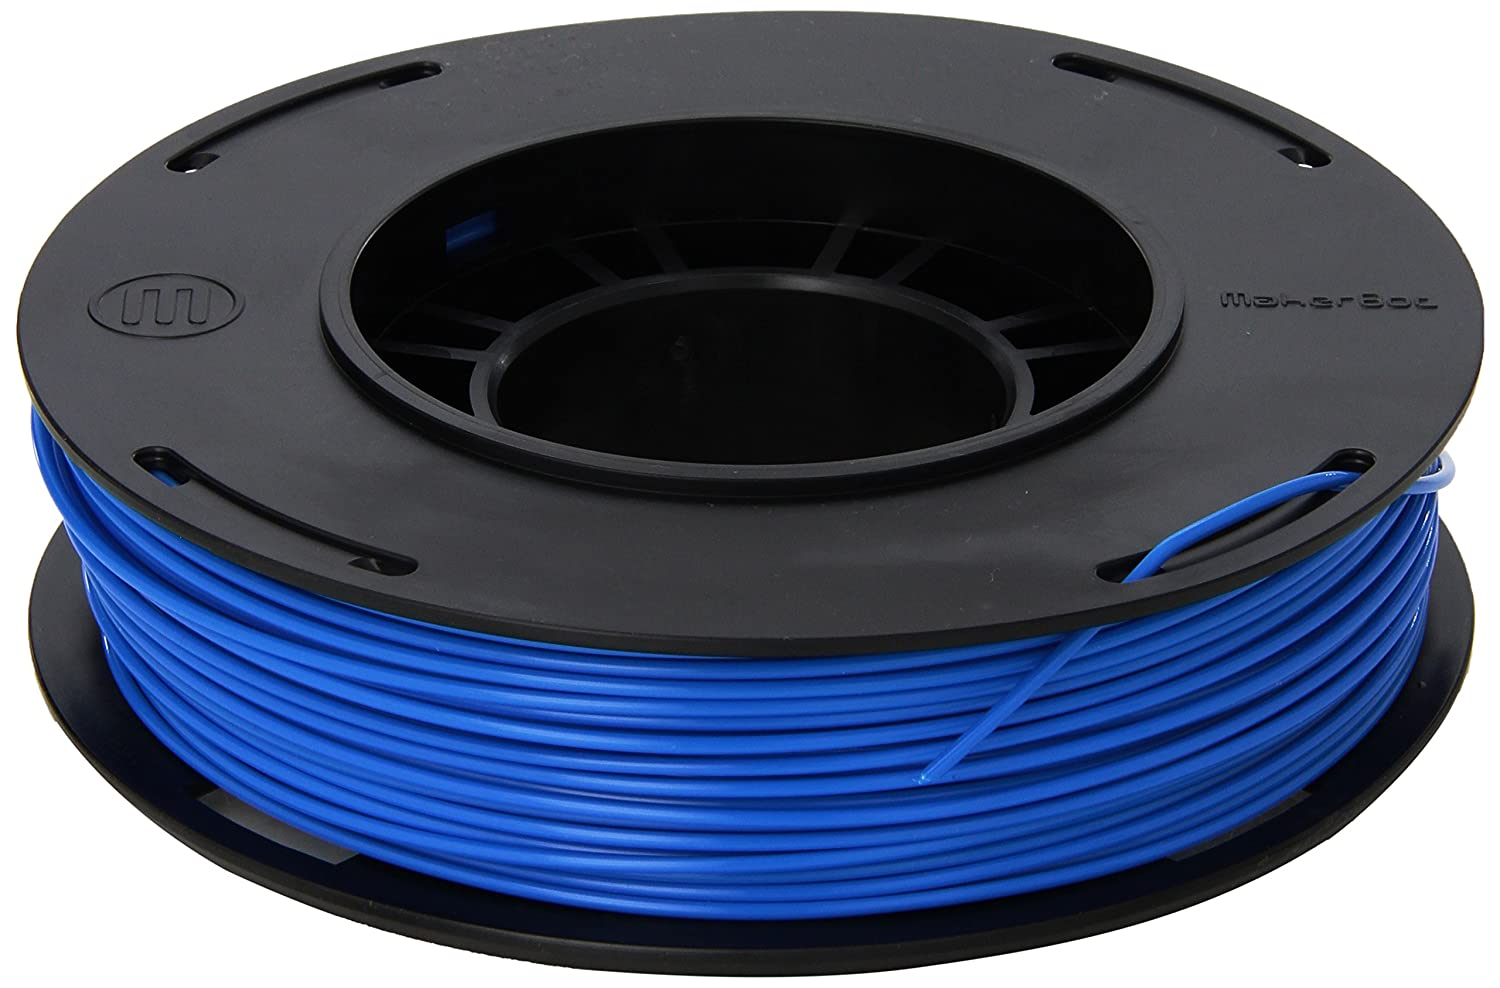 MakerBot PLA Filament, 1.75 mm Diameter, Small Spool, Blue MP05796